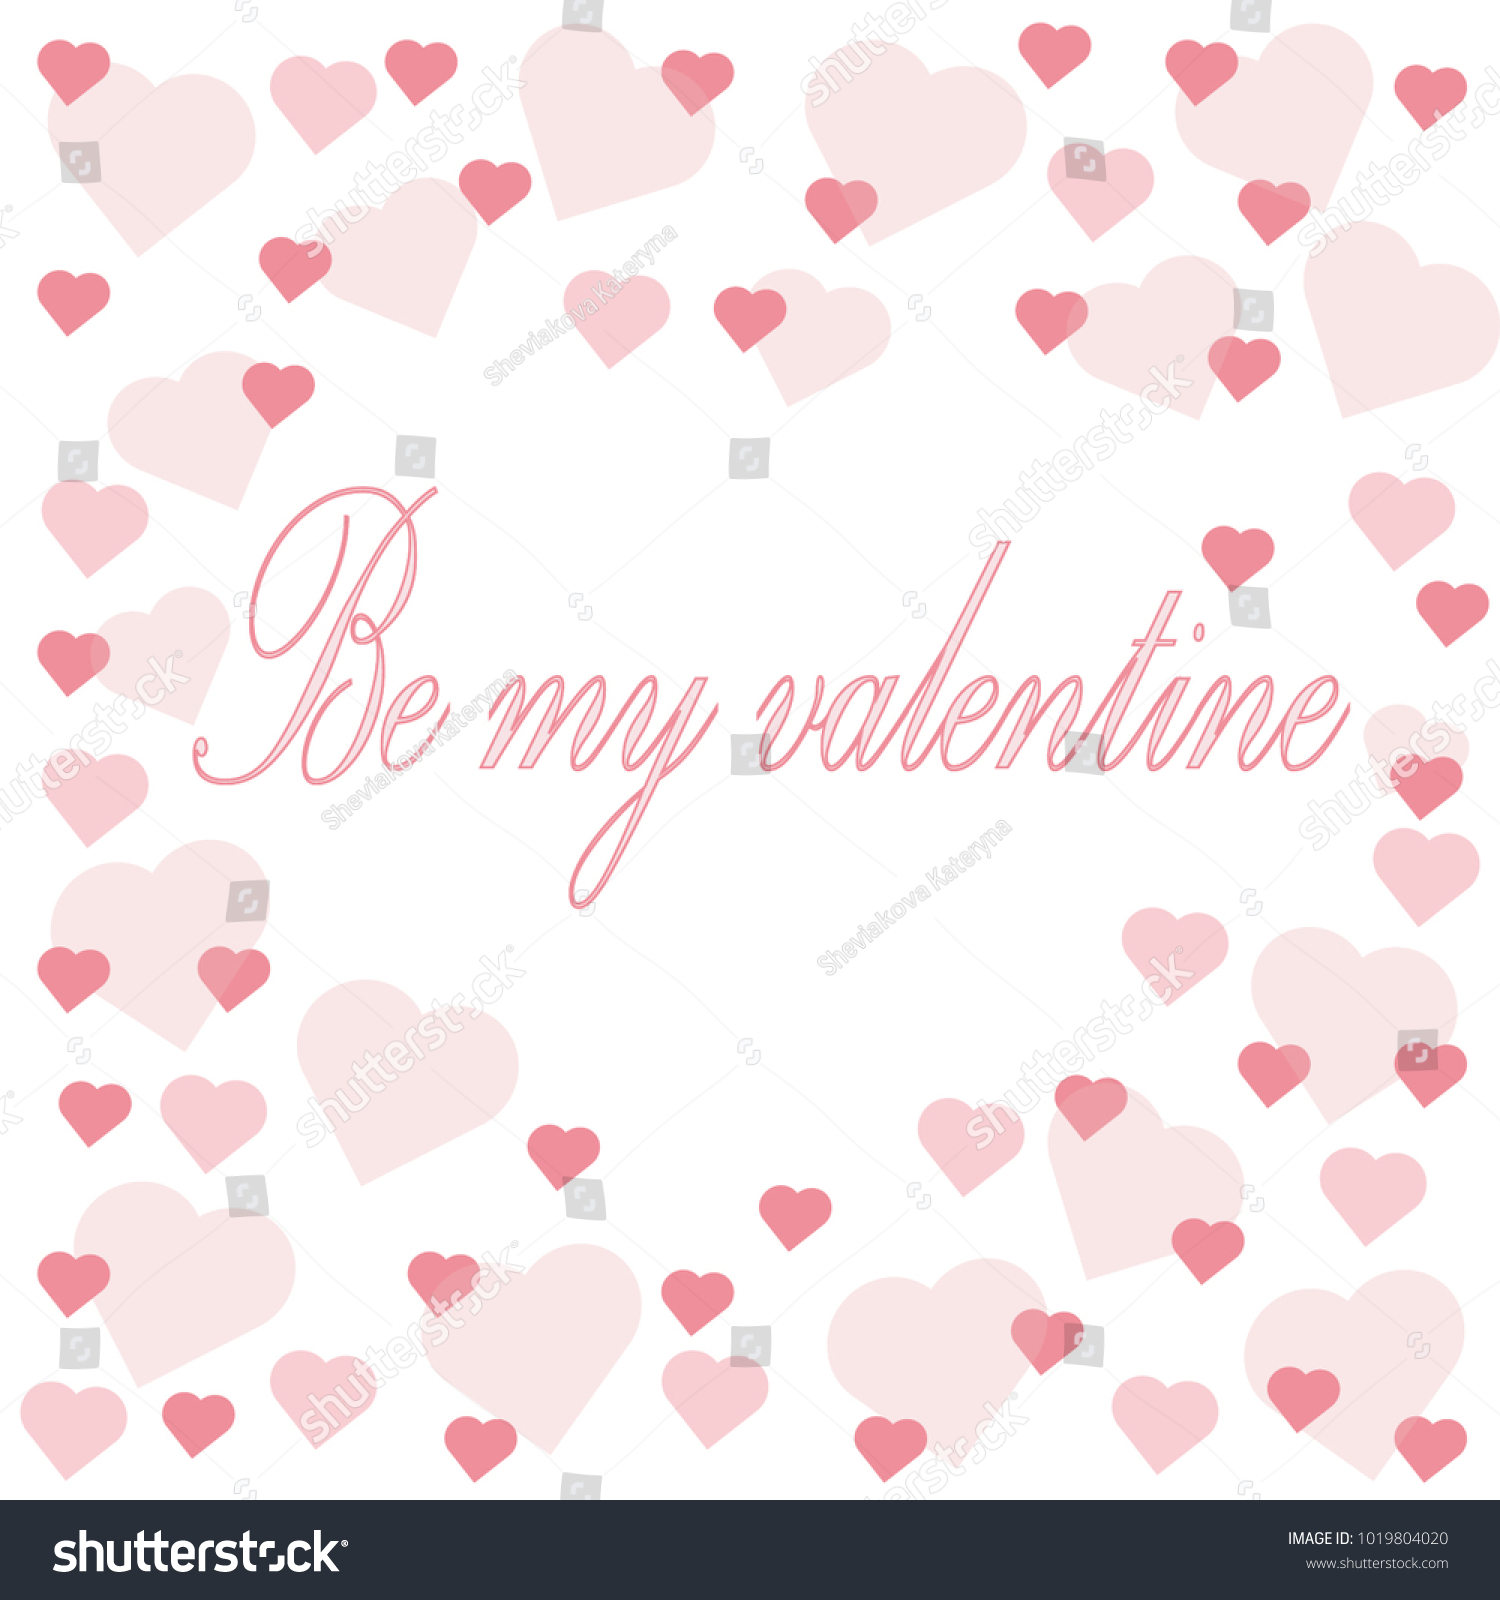 Greeting Card On A Shiny Background With Pink Hearts And An